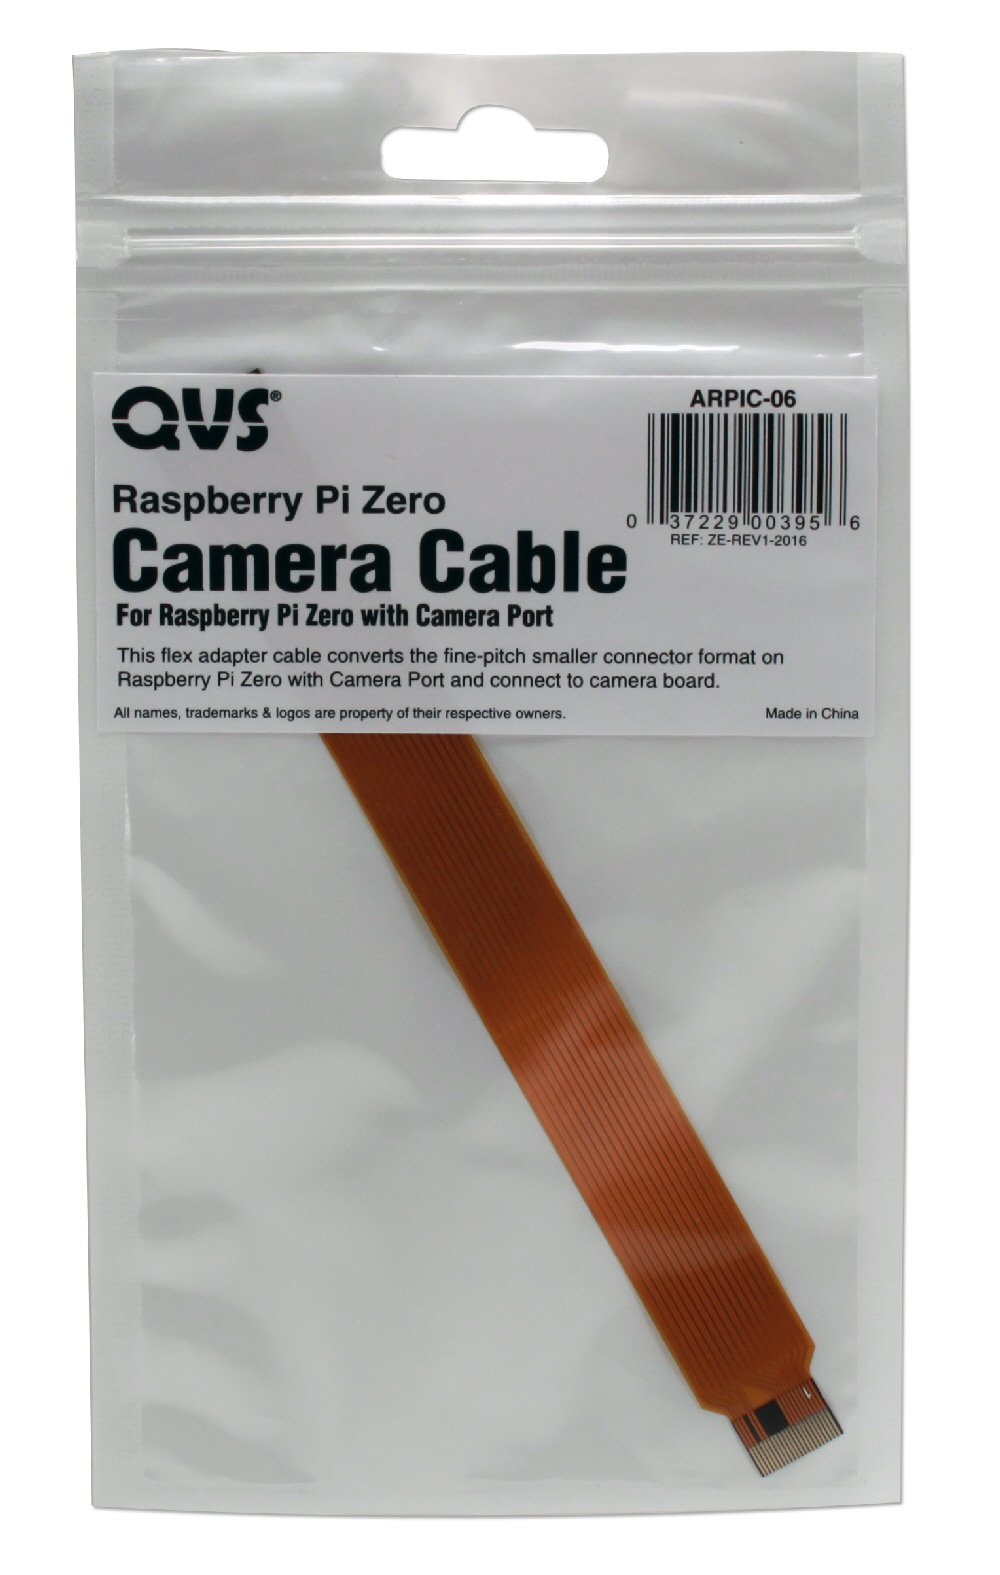 6-Inch Flex Camera Adapter Cable for Raspberry Pi Zero with Camera Port - ARPIC-06